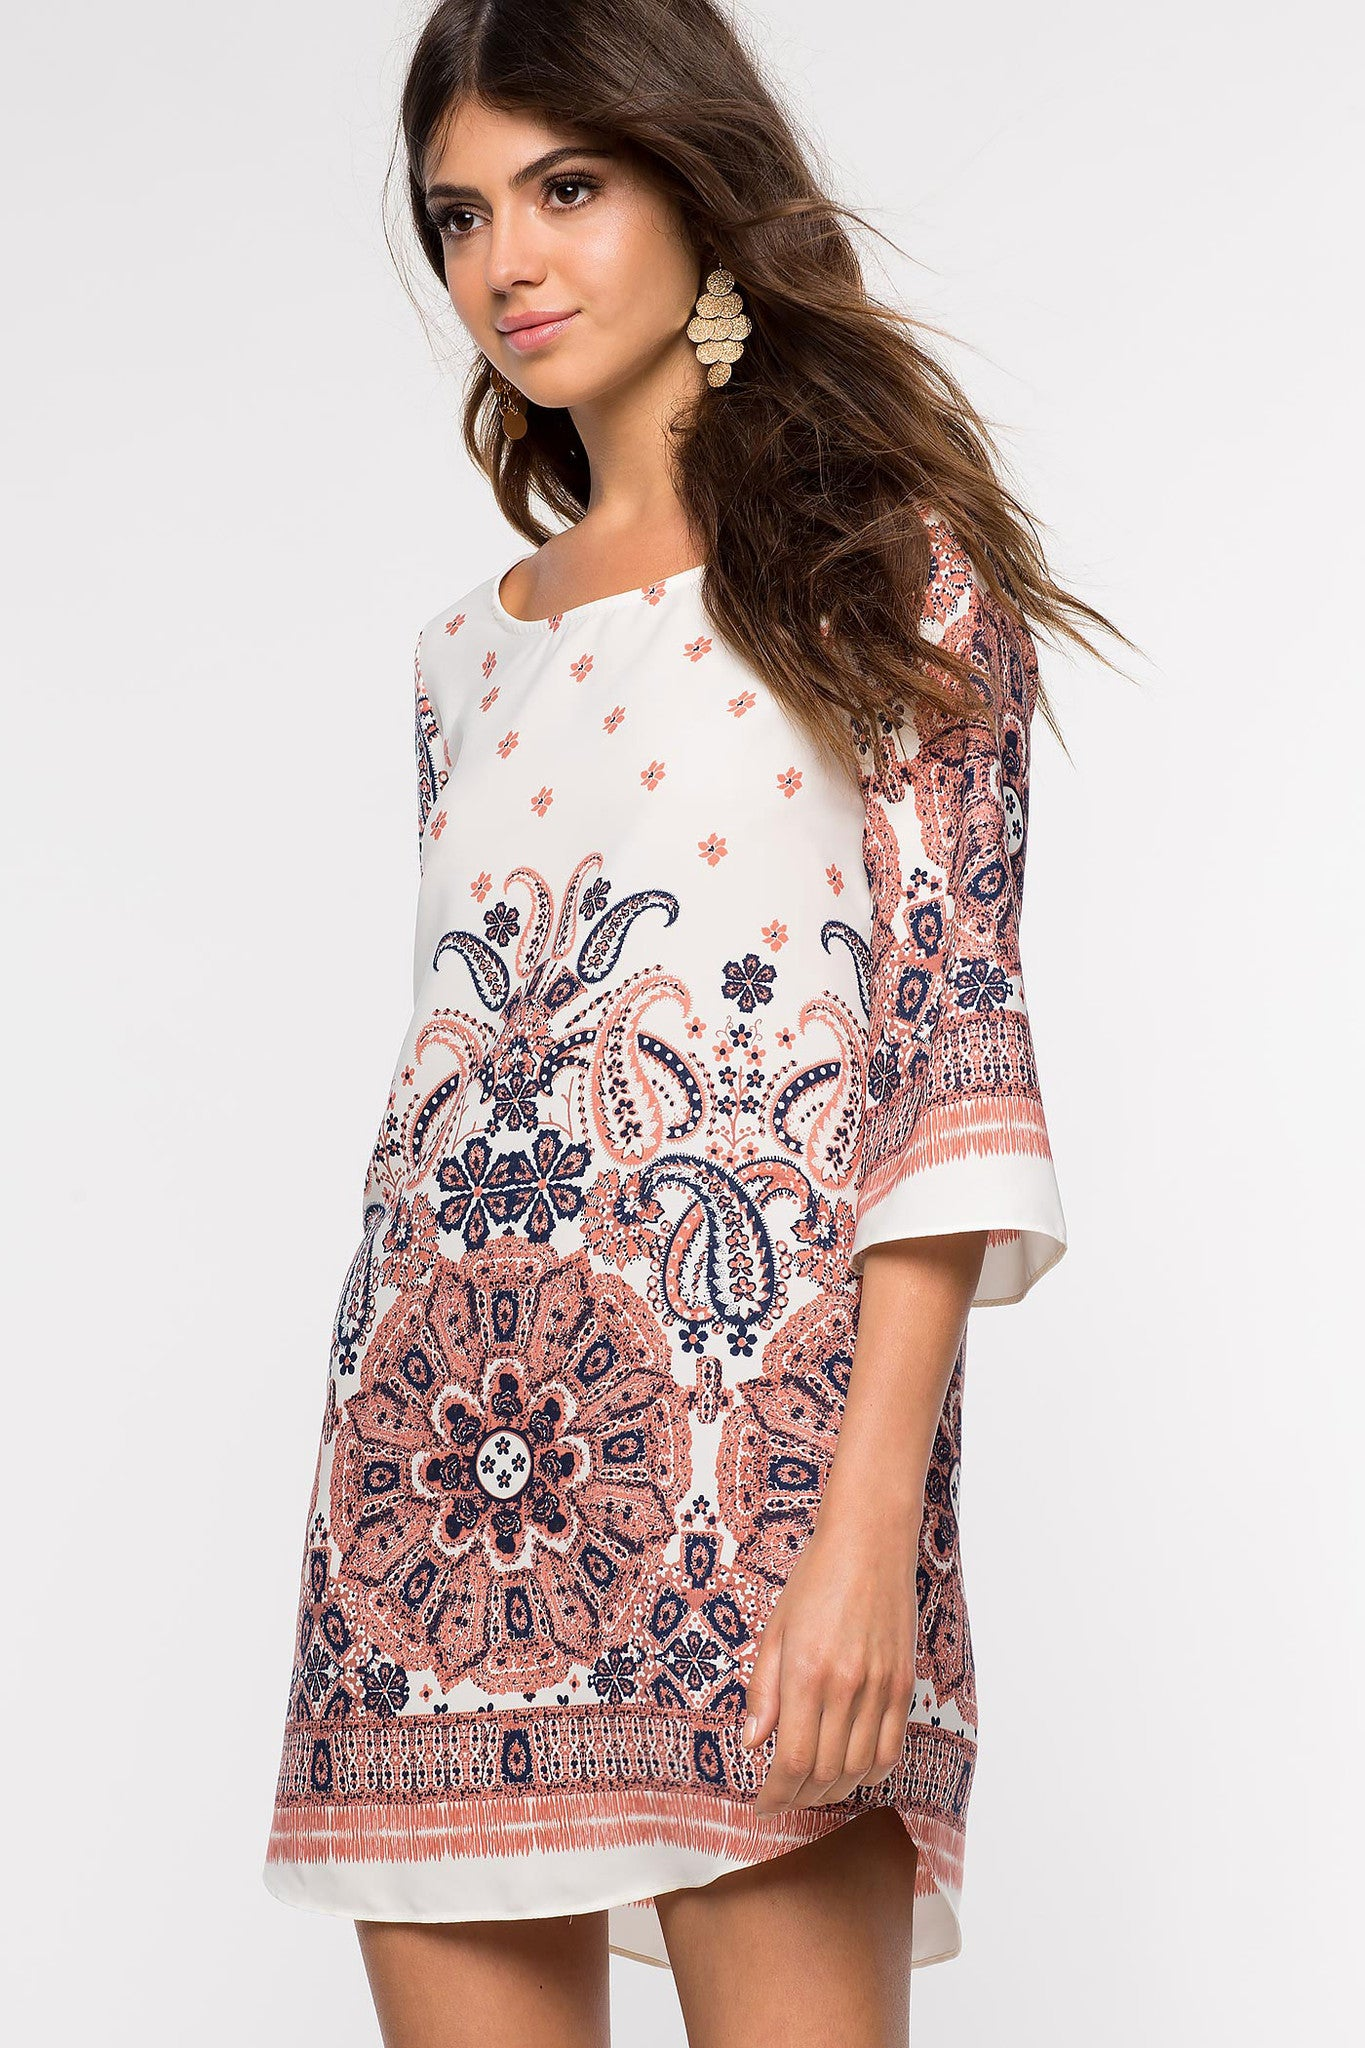 Womens Casual street style outfit long sleeve paisley print mini shift tunic dress in red coral print. Front view